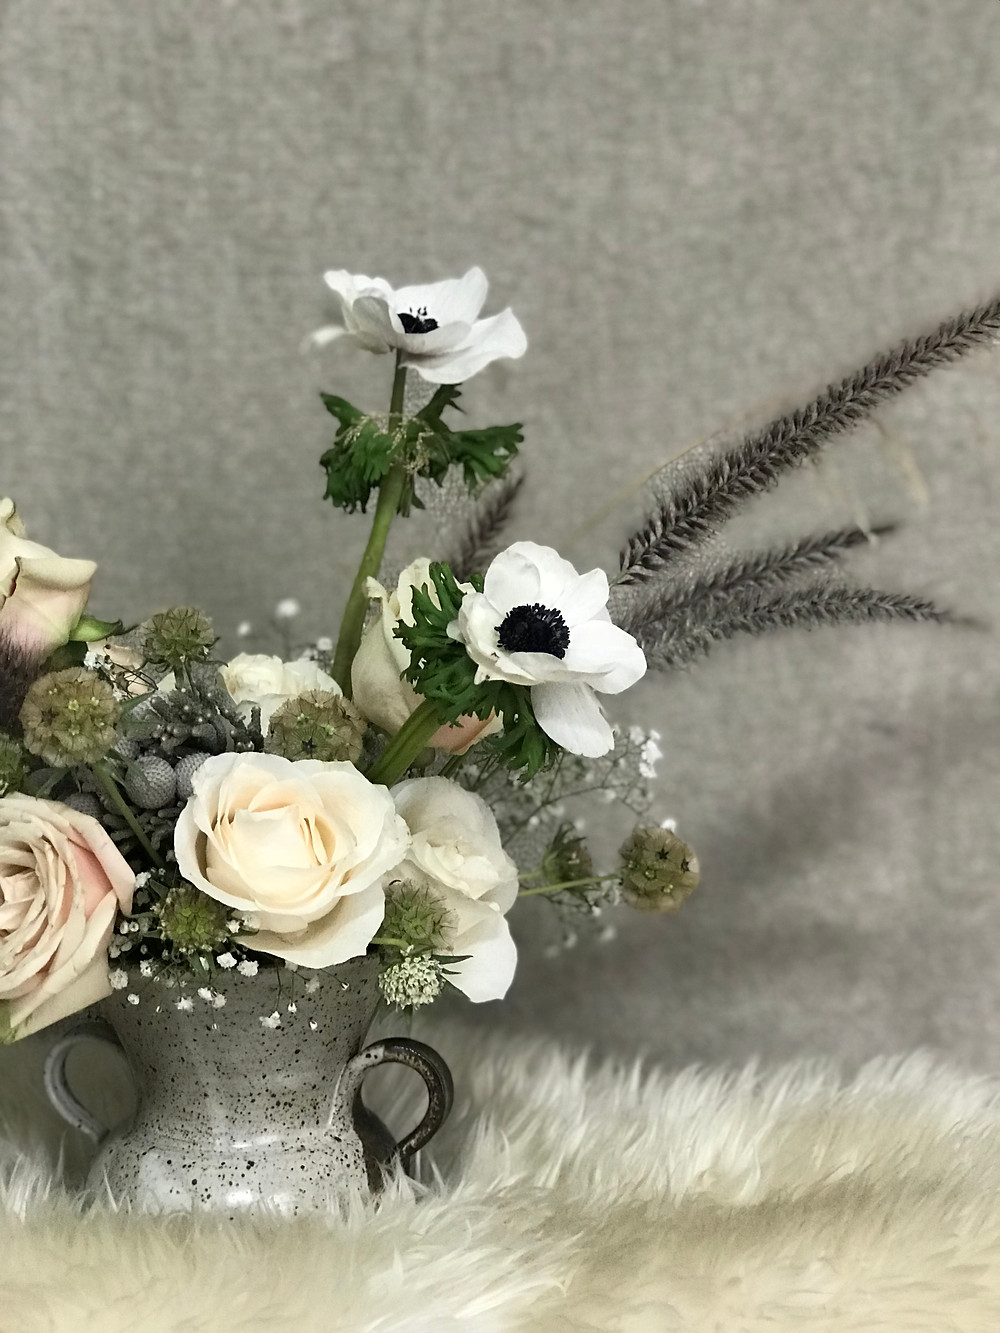 Close up of a floral arrangement for a winter wedding